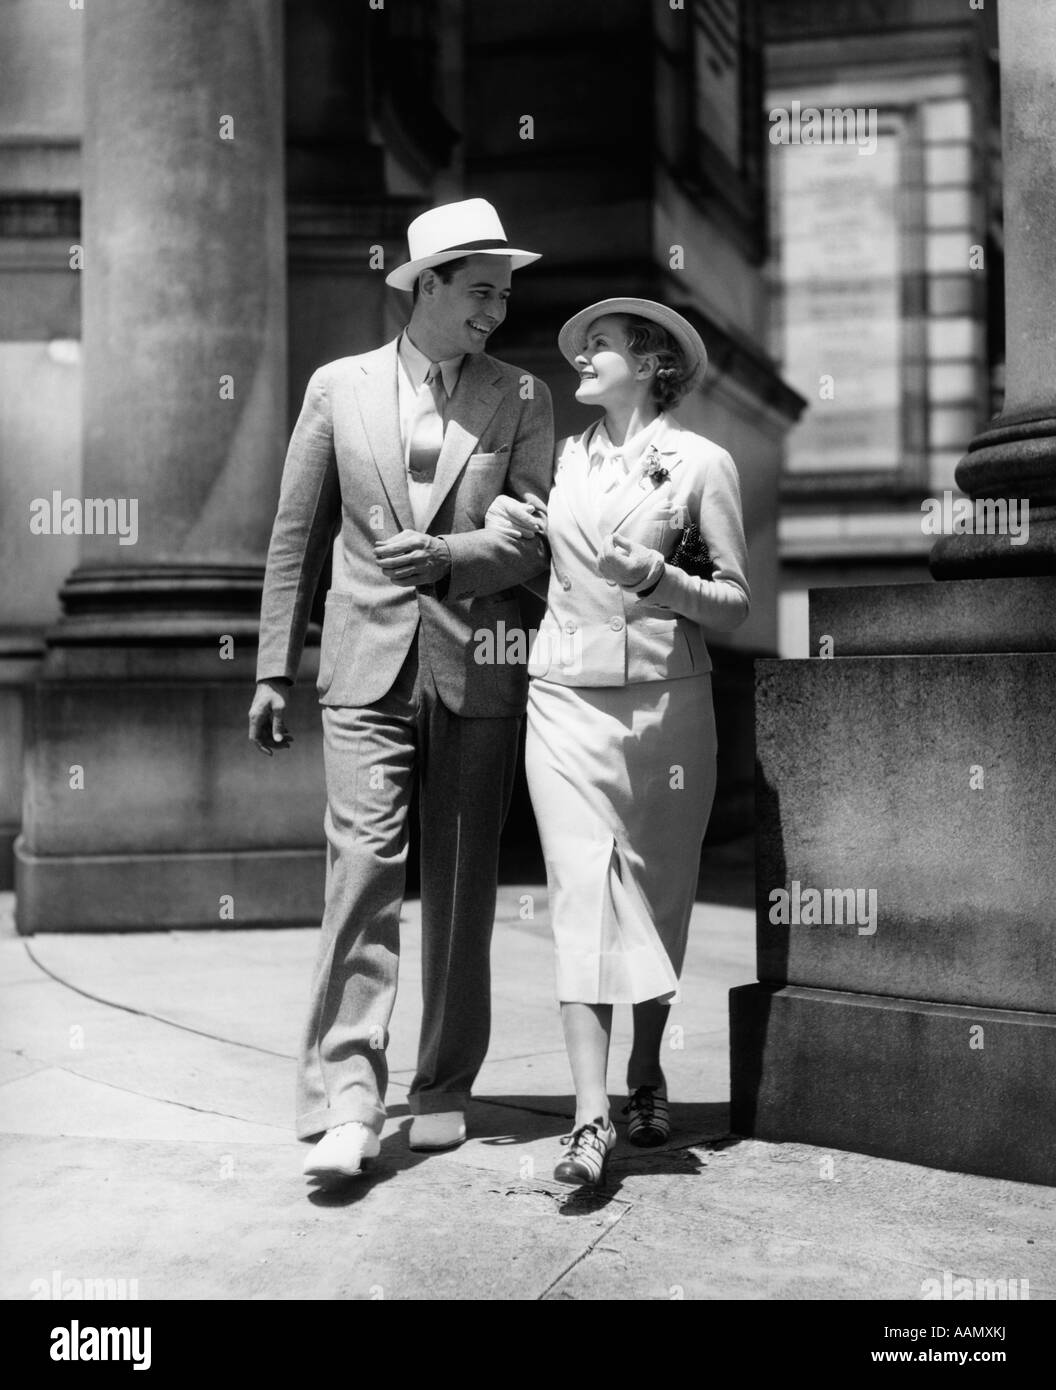 1930s COUPLE IN SUITS AND HATS WALKING ARM IN ARM - Stock Image